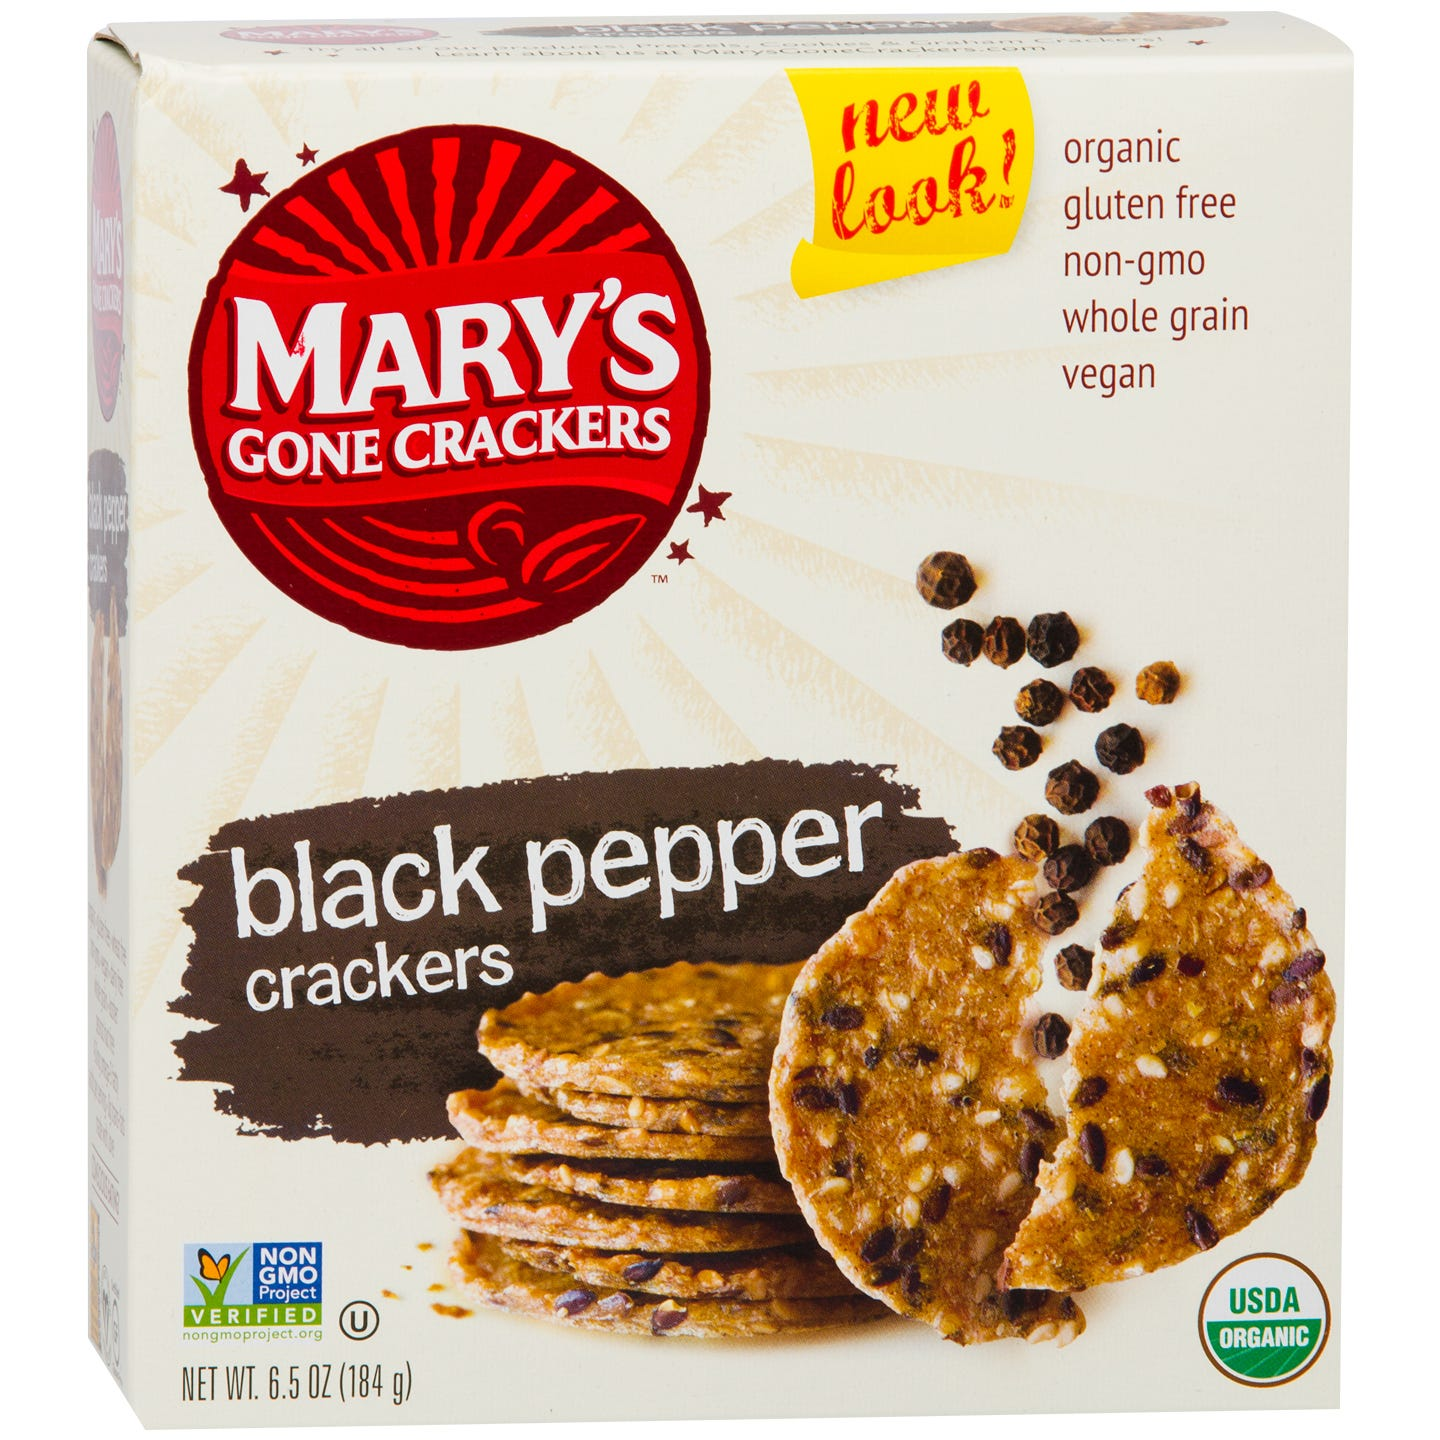 Gluten Free Crackers Black Pepper 6.5 oz, Mary's Gone Crackers - Rapid Diet Weight Loss Products Shop